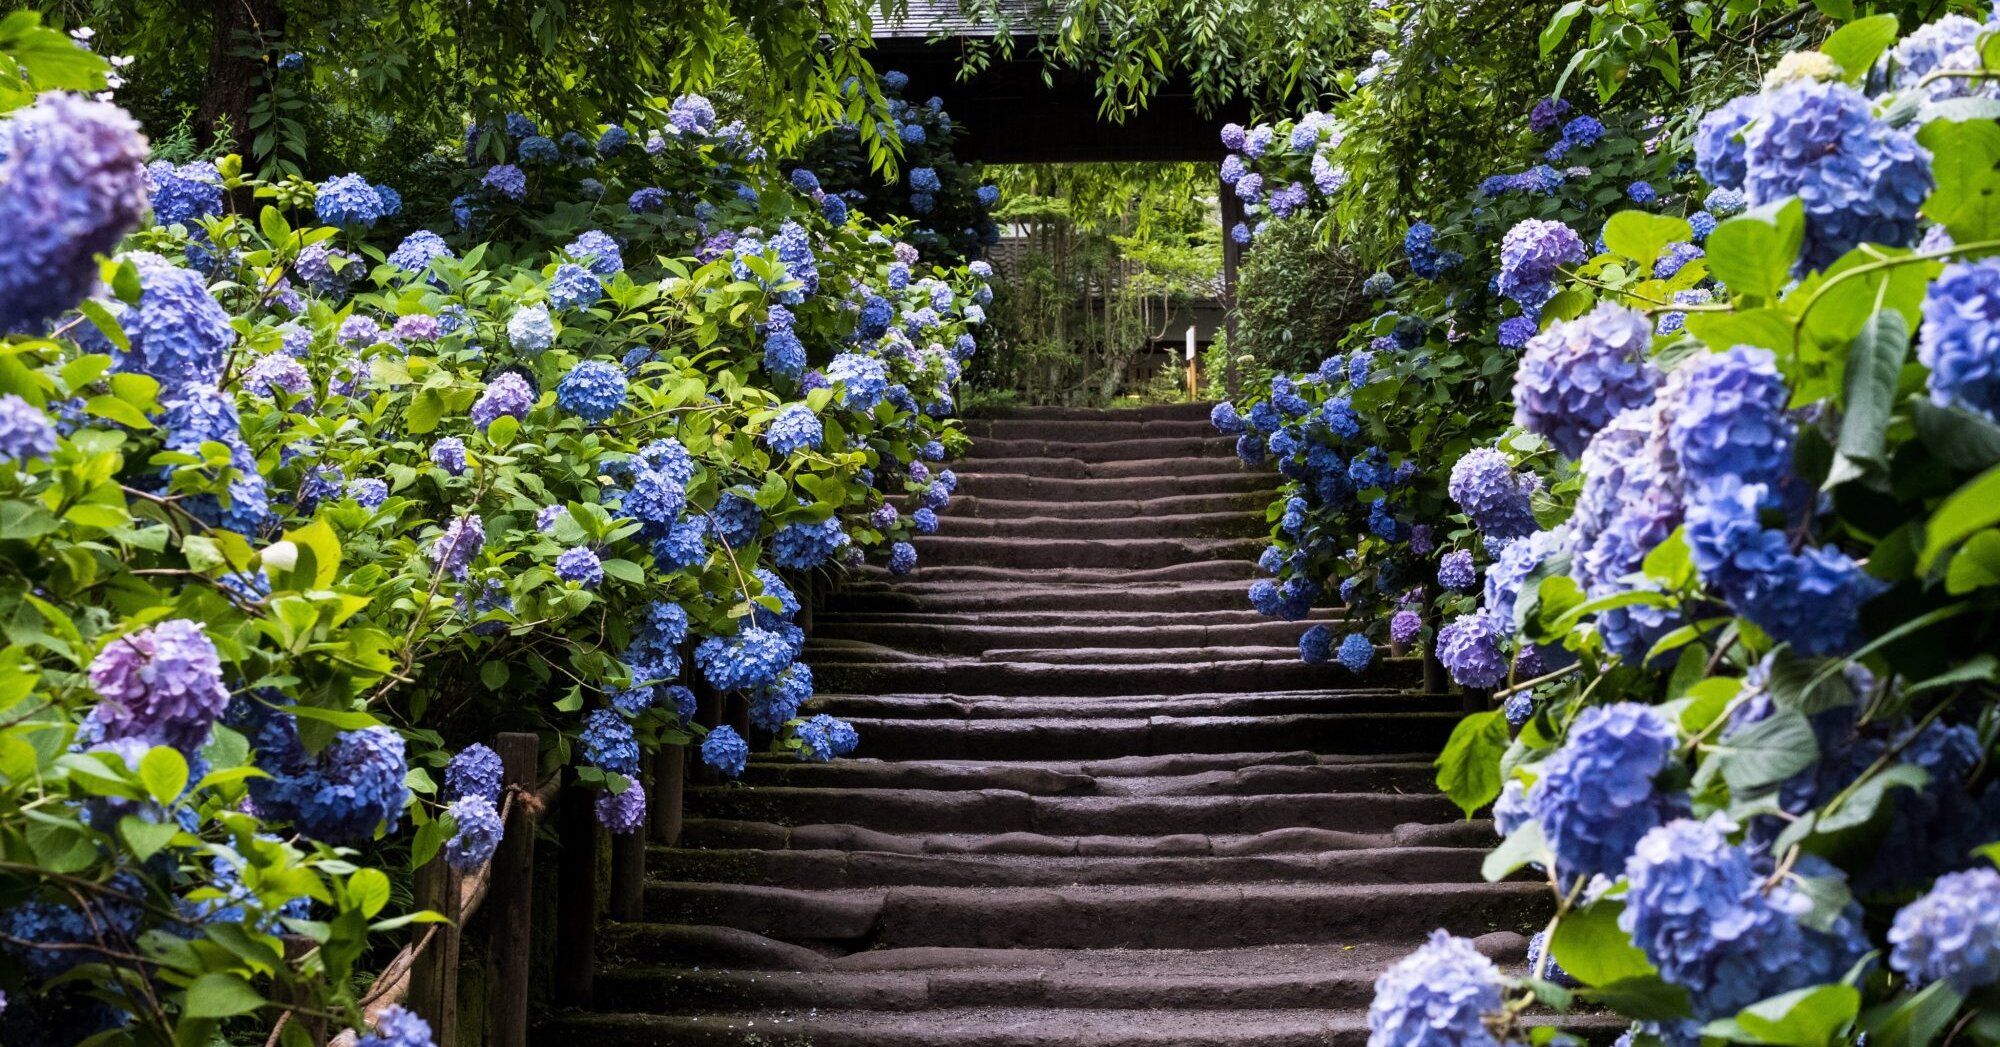 What Should You Do About Hydrangea Bushes That Are Getting Too Big?